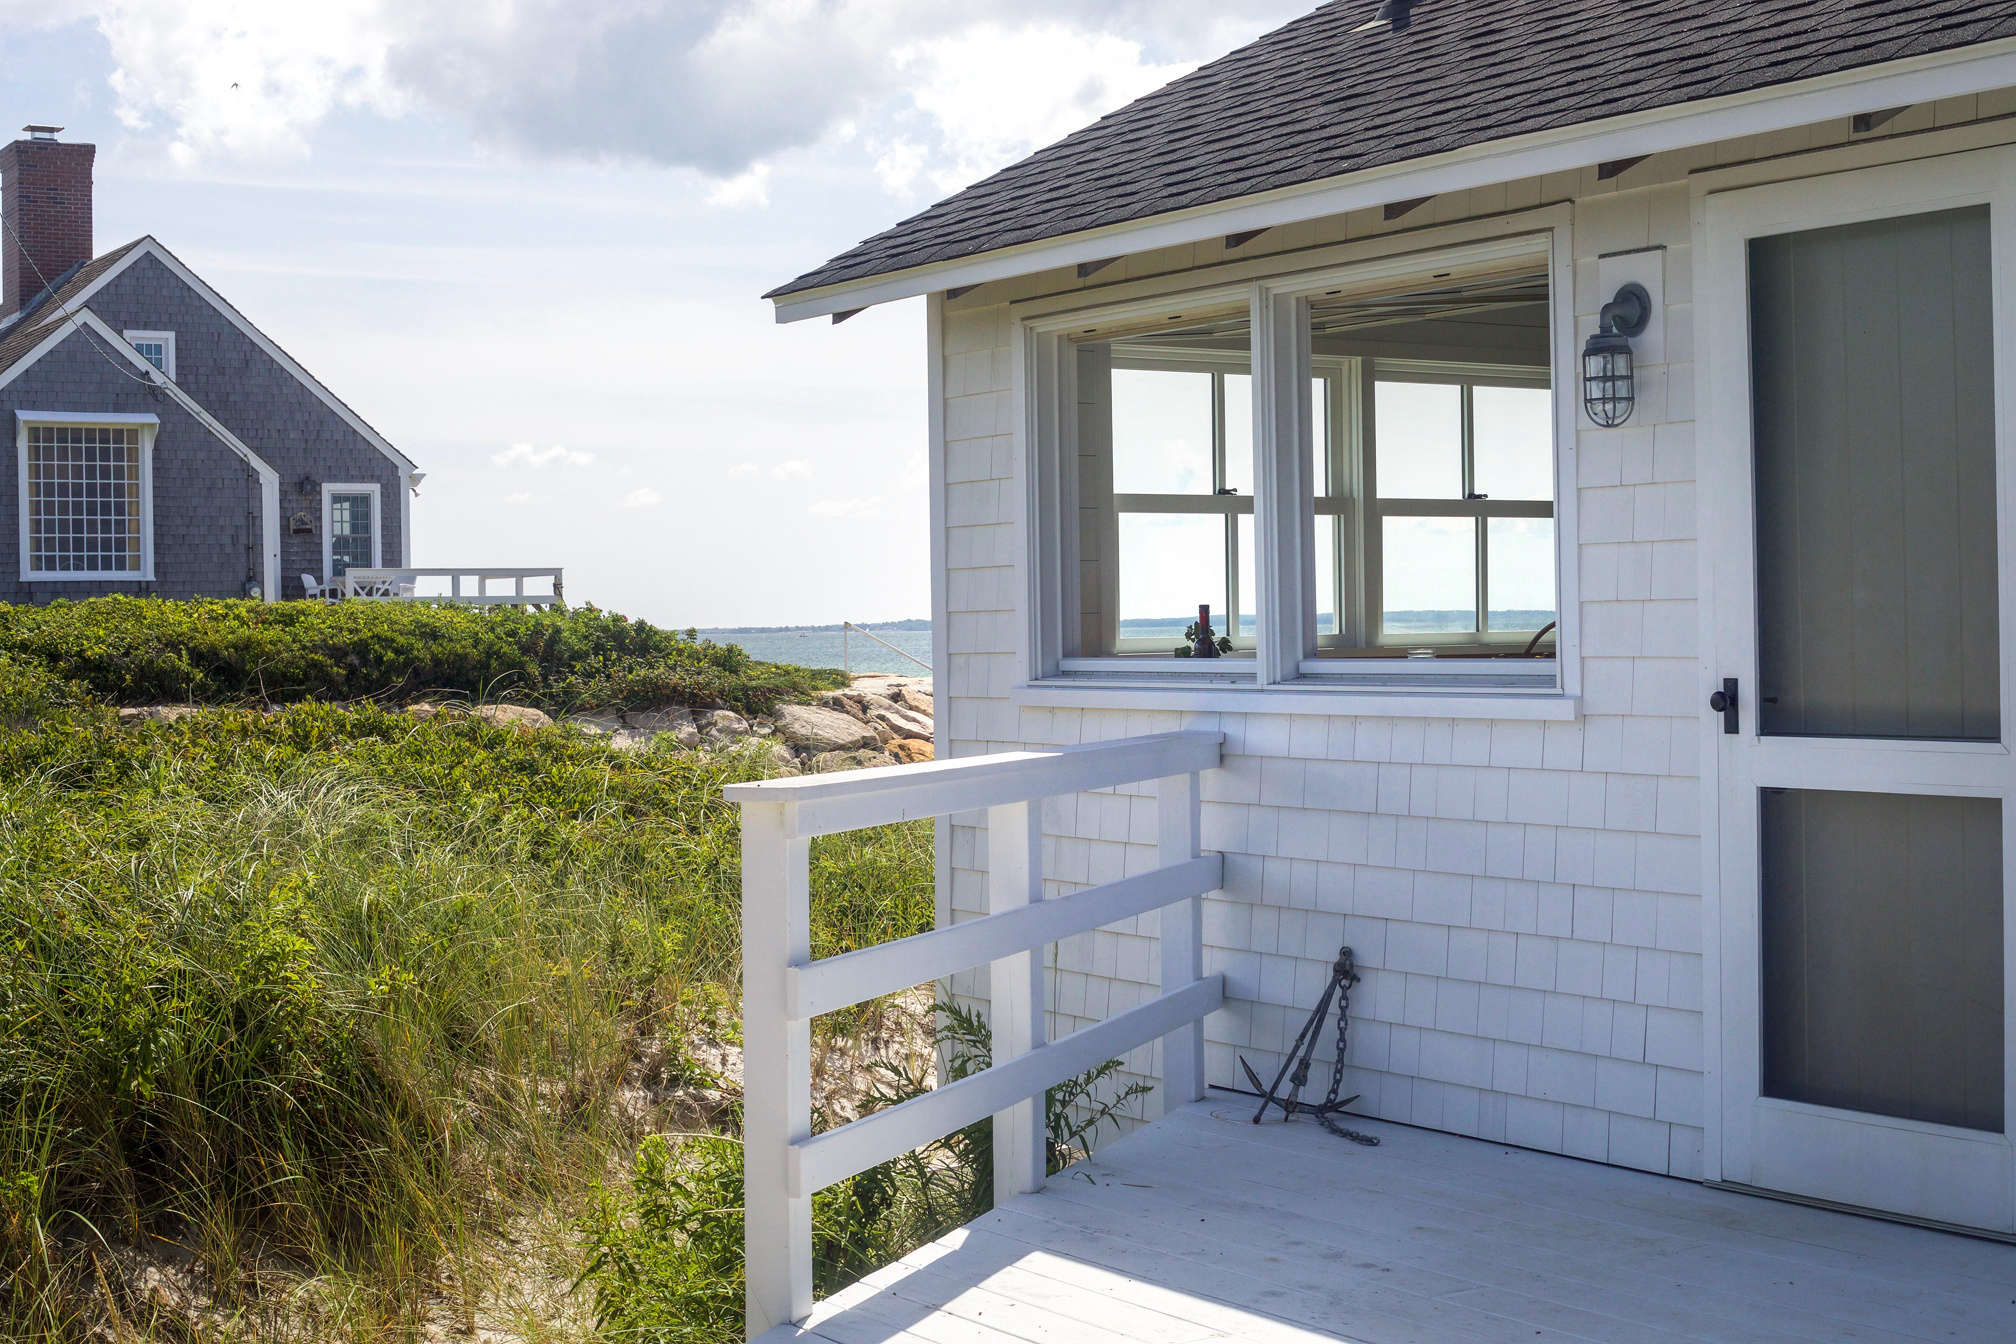 The Sand-Free Cottage: 8 Ways to Keep the Beach at Bay - Remodelista